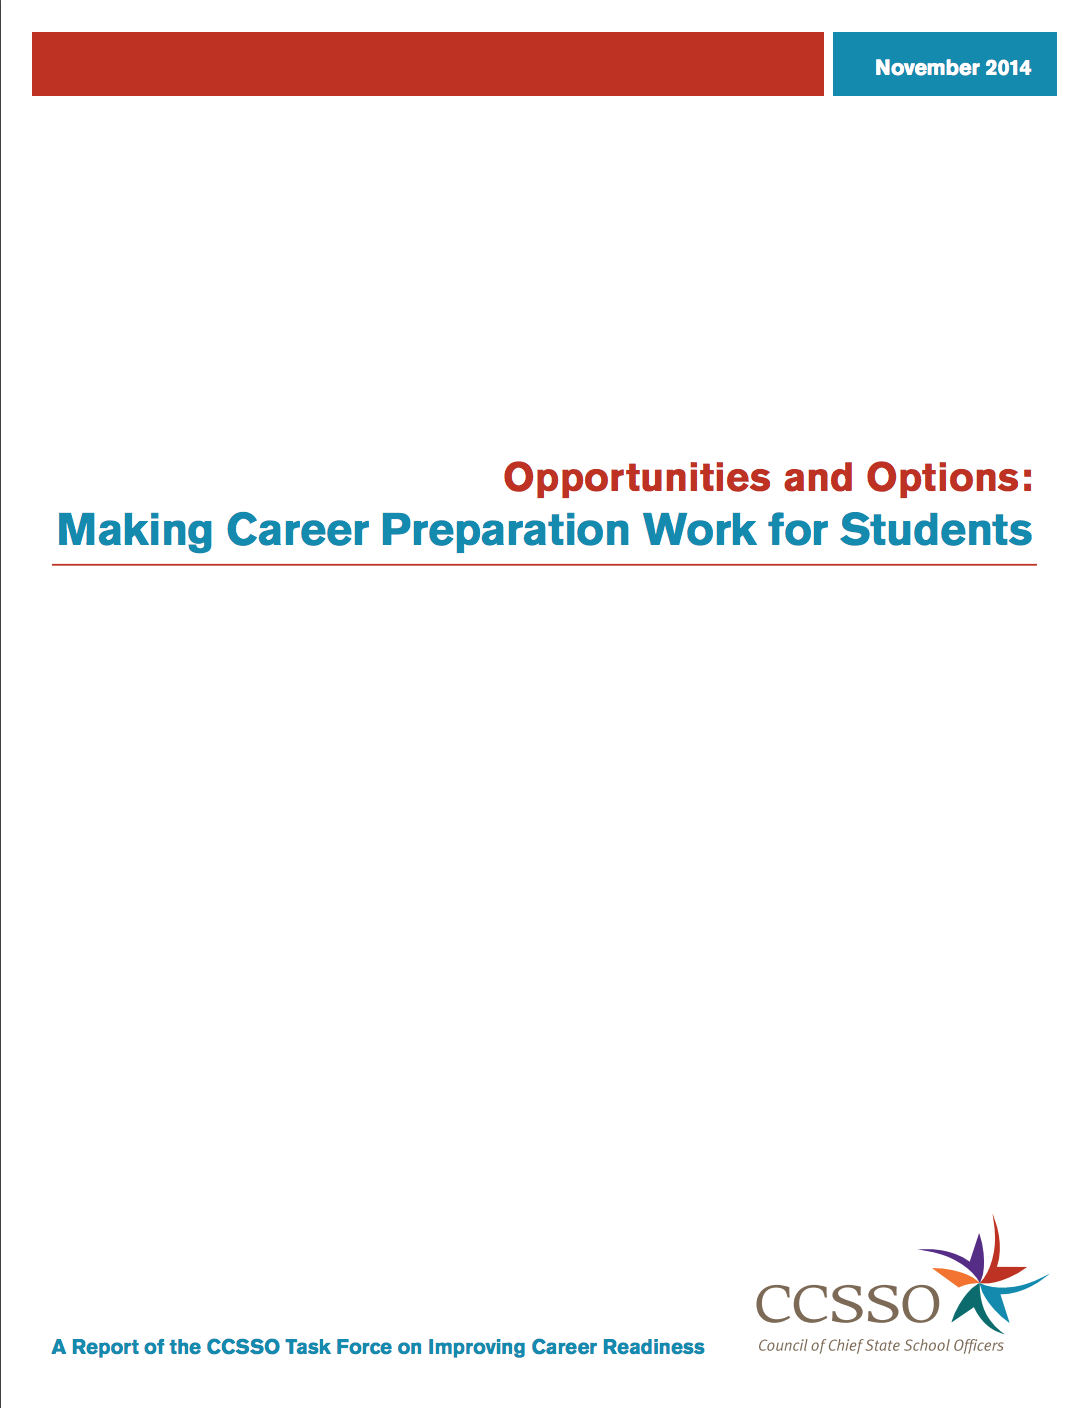 Opportunities and Options title page